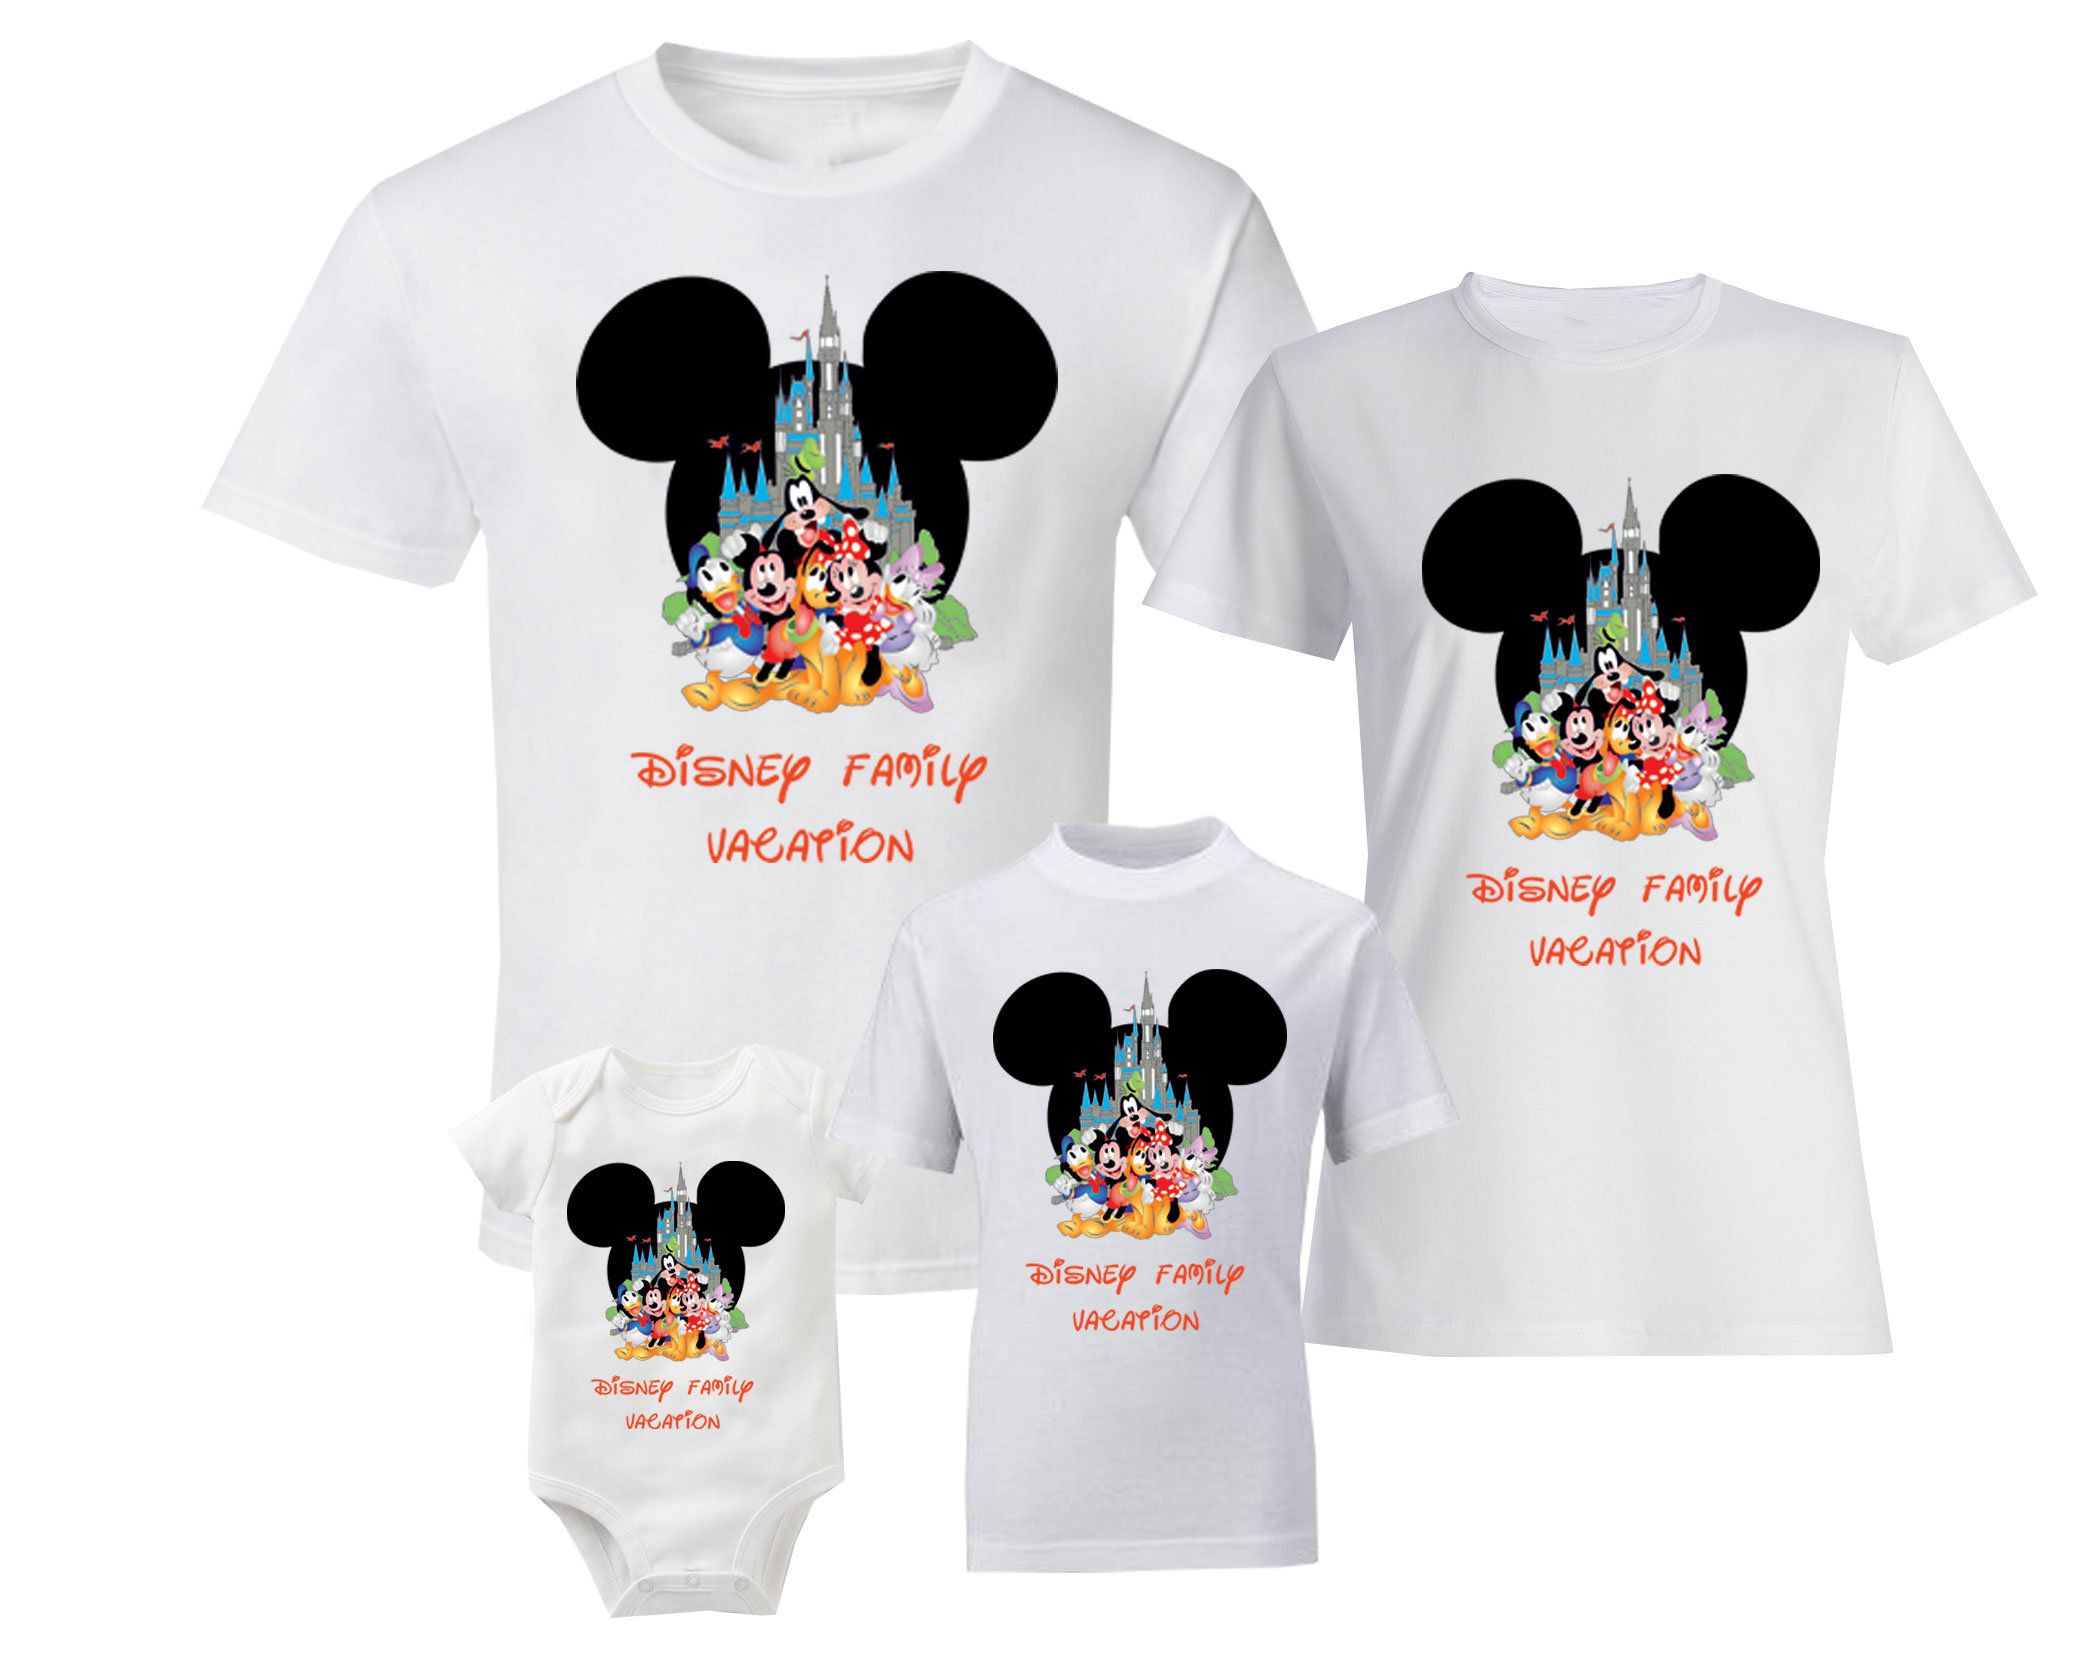 23377c80971d77 Disney Family Vacation Shirts Disney T-Shirts Family Trip Shirts Mickey  Mouse Family Shirts Family Vacation Tshirts by BestDesignStoreGifts on Etsy